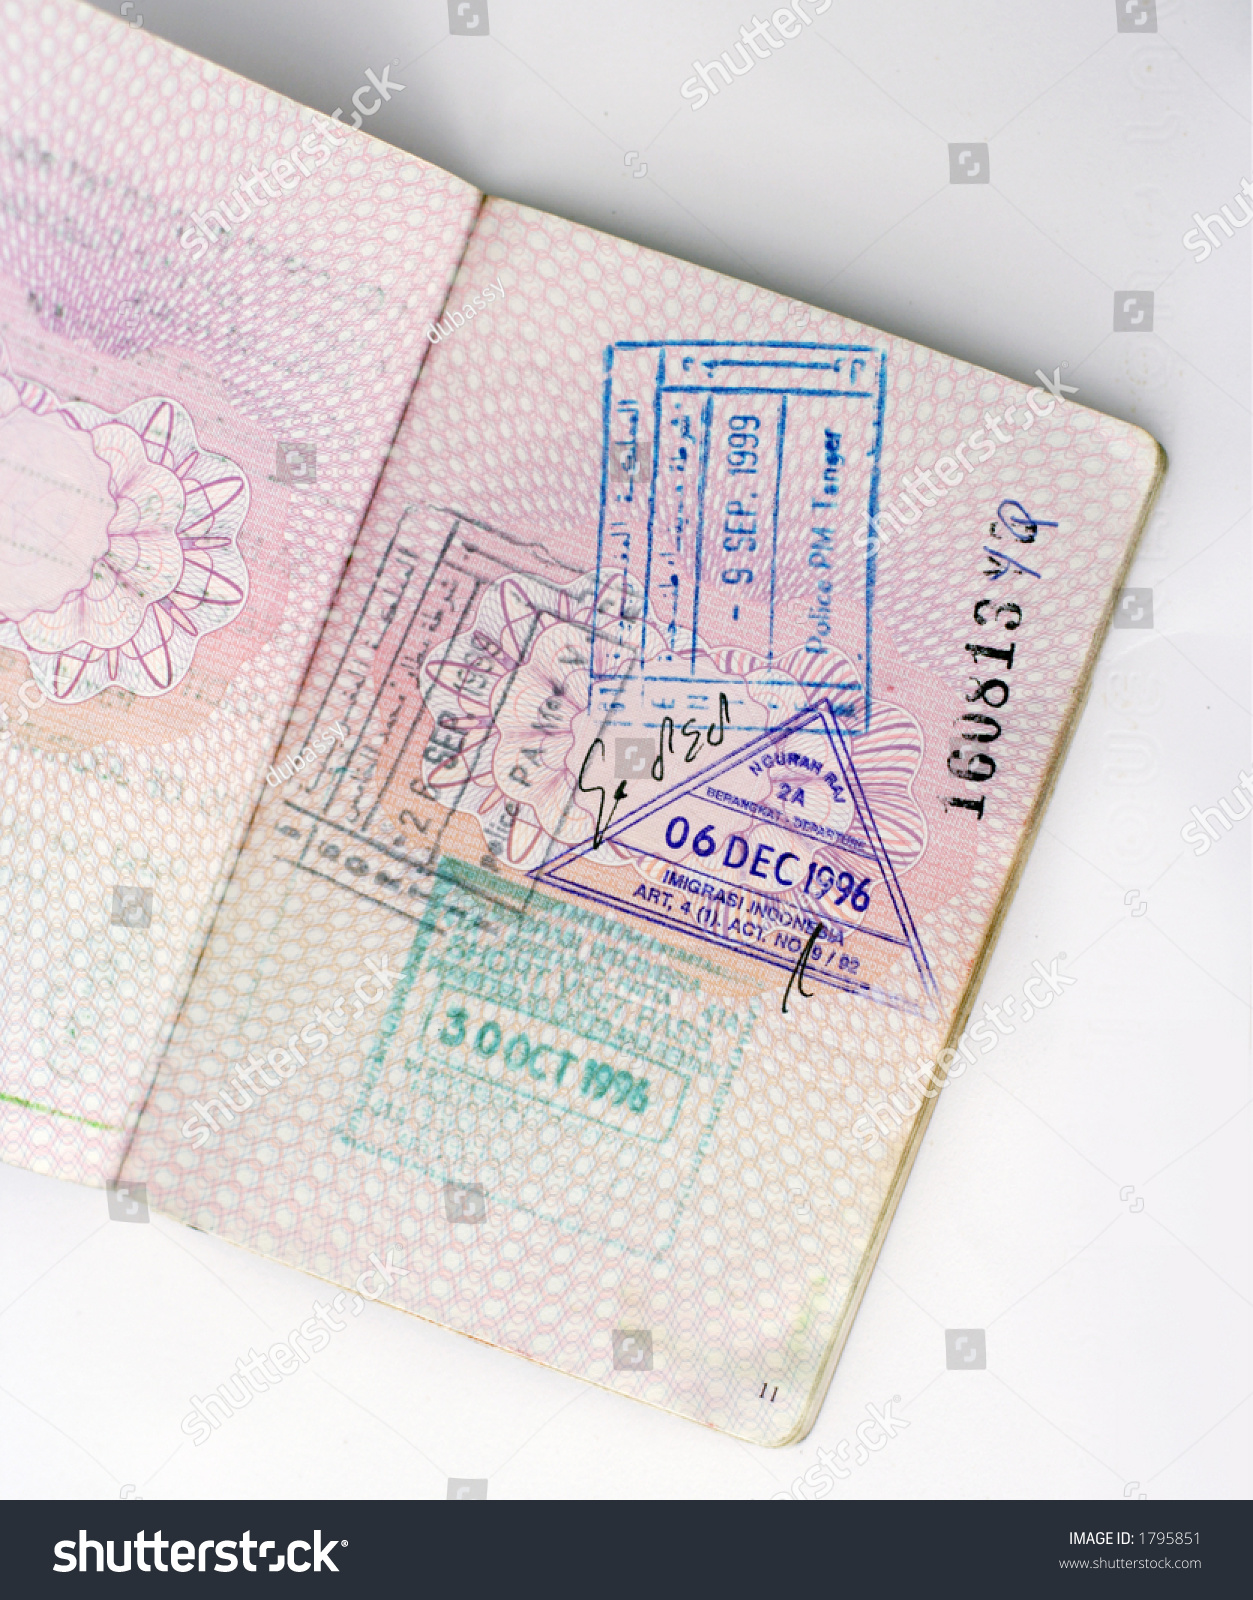 how to find out passport id